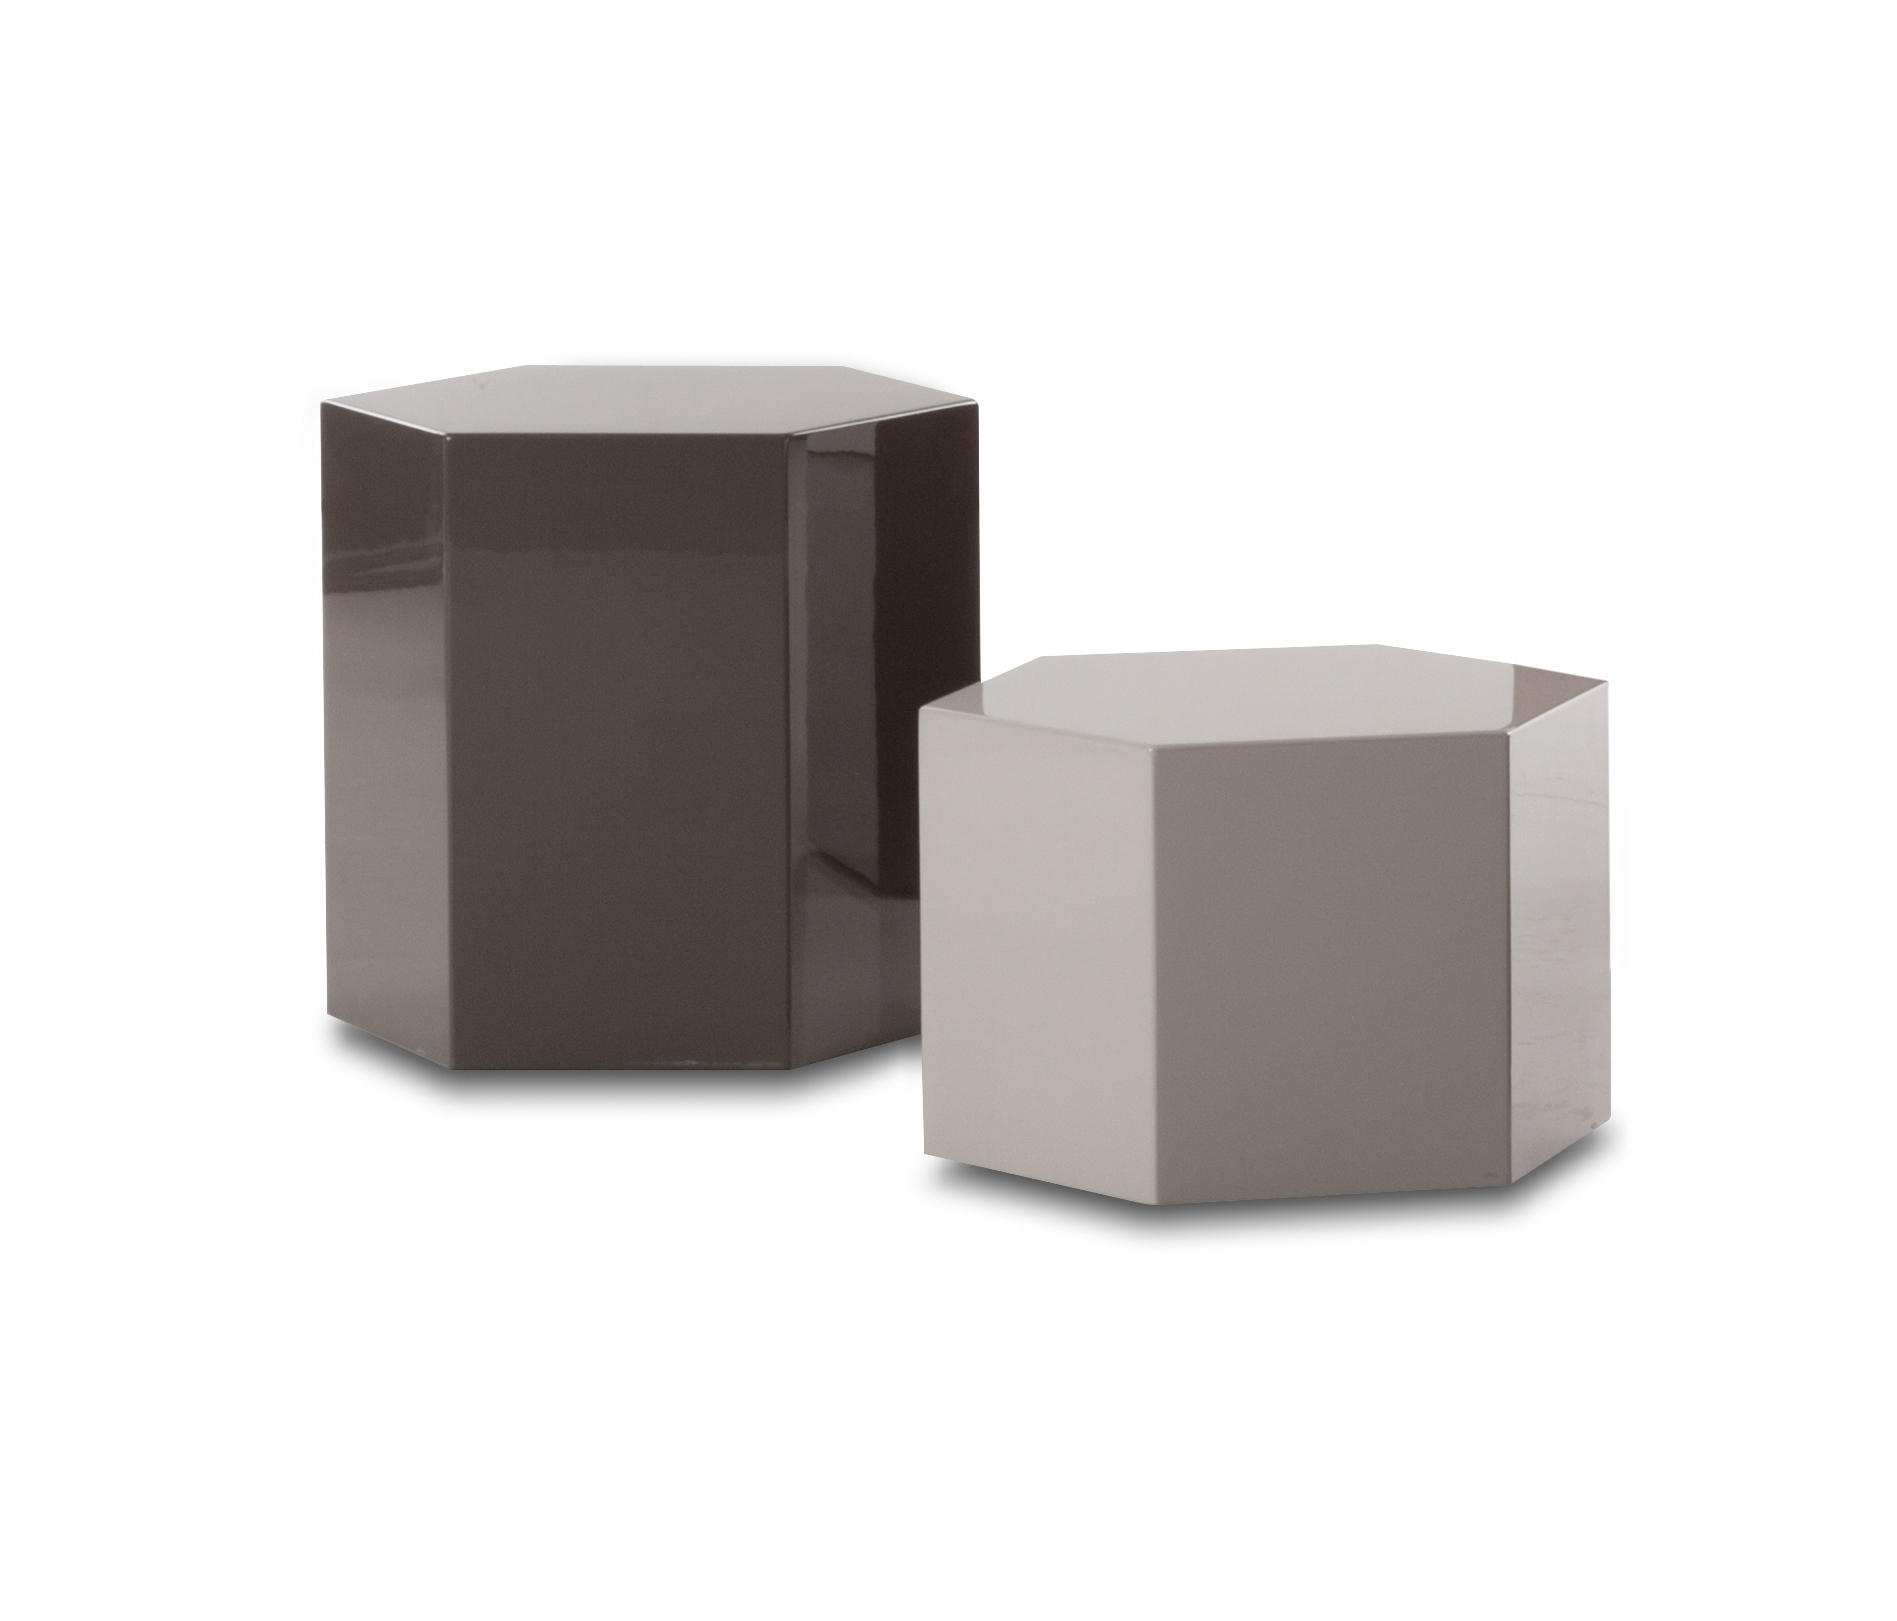 aeron outdoor accent tables side from minotti architonic table with power pier one lamps silver mirrored nightstand furniture brushed brass coffee bunnings piece setting small